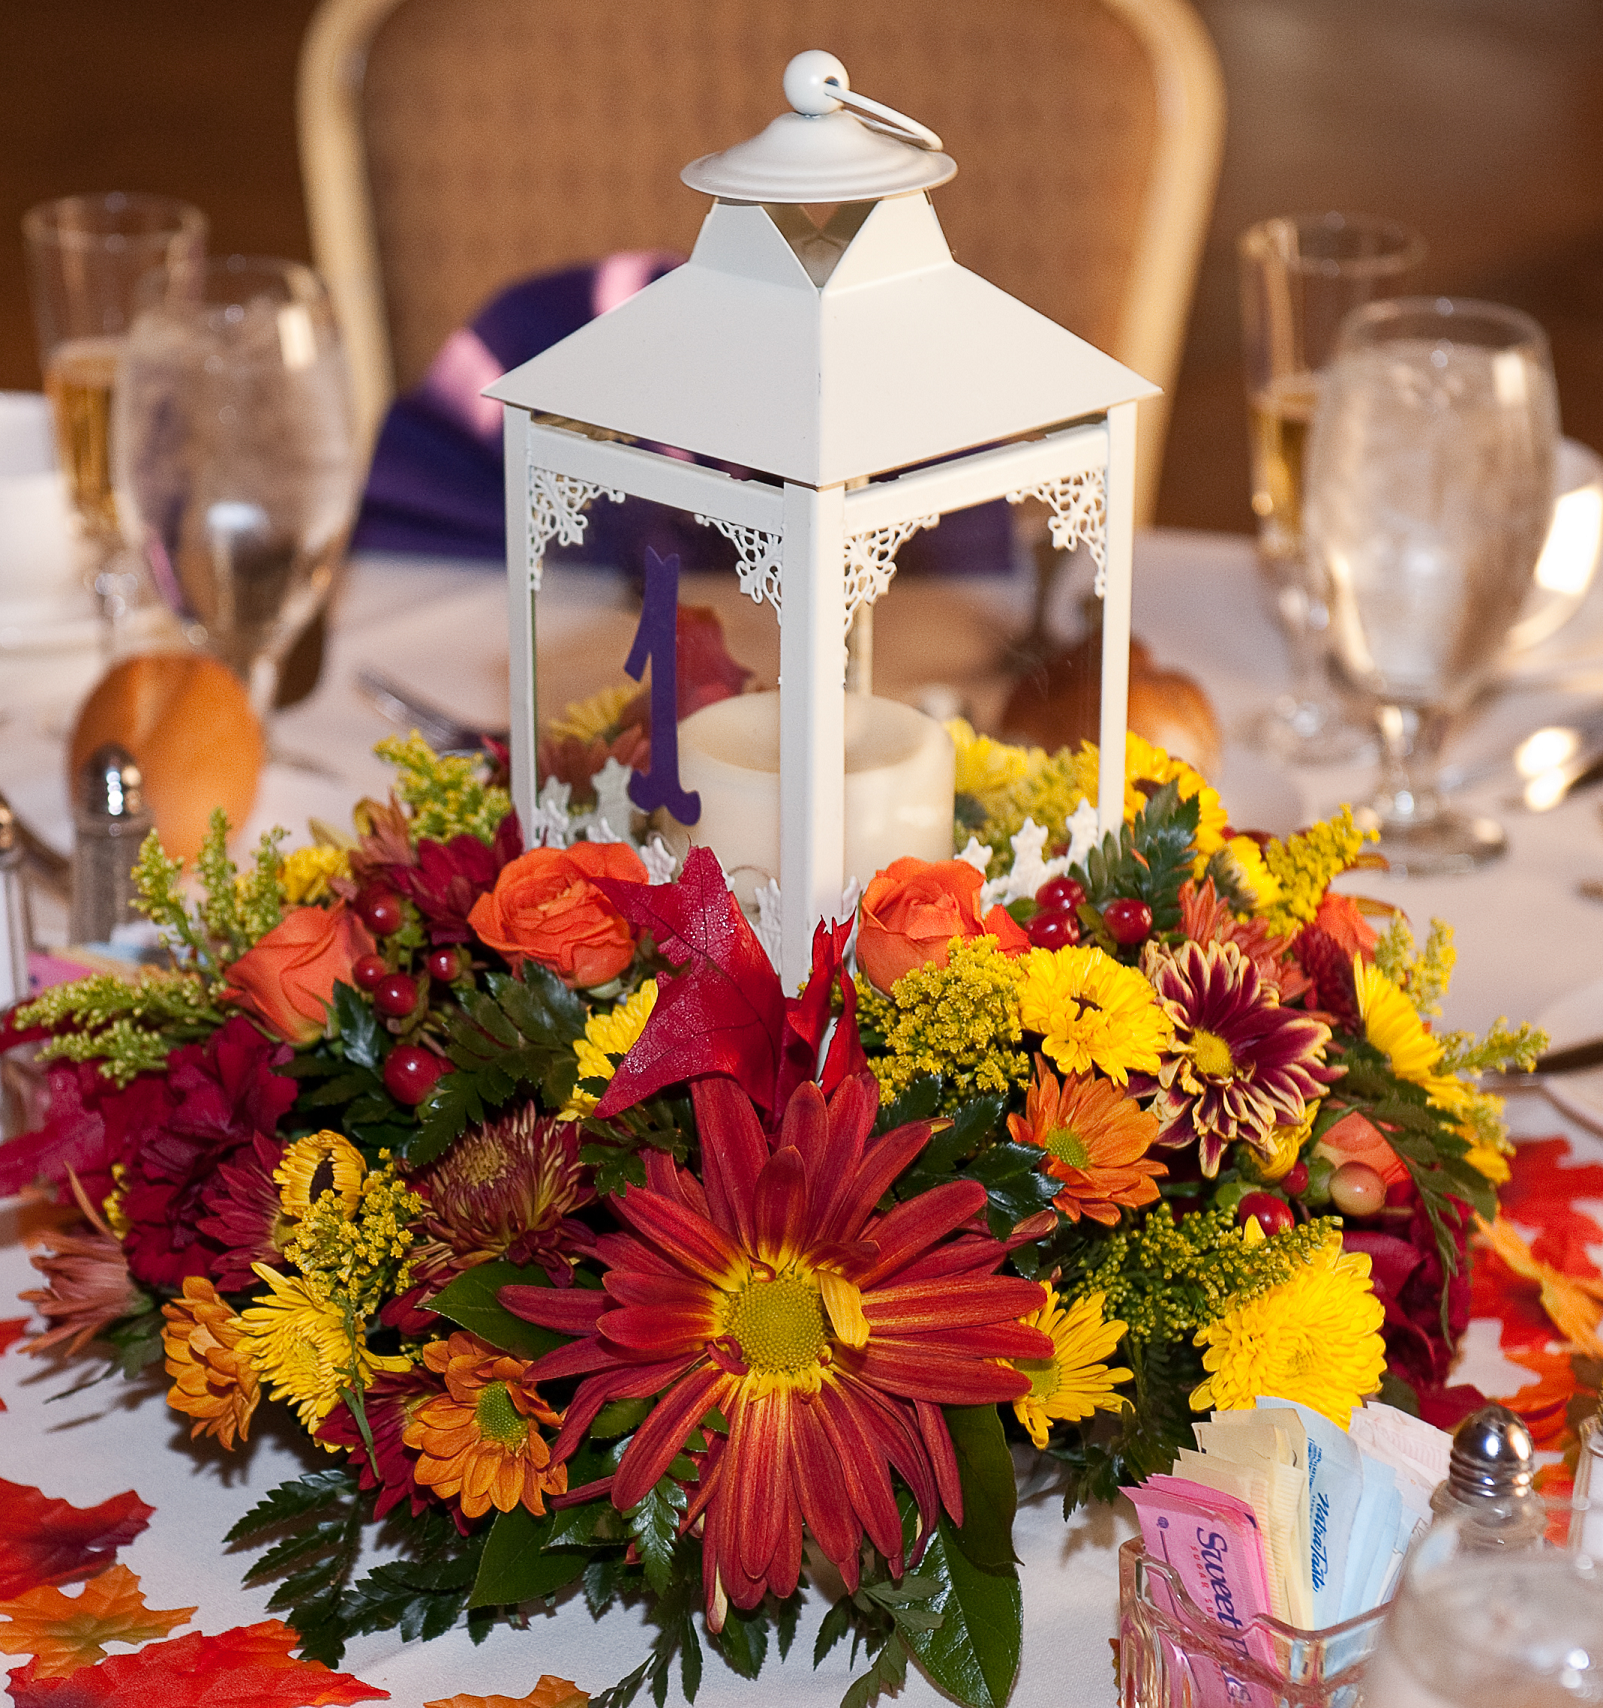 Cute Wedding Centerpiece Ideas: Centerpieces. Bought Lanterns Off Ebay (20 For Like 160